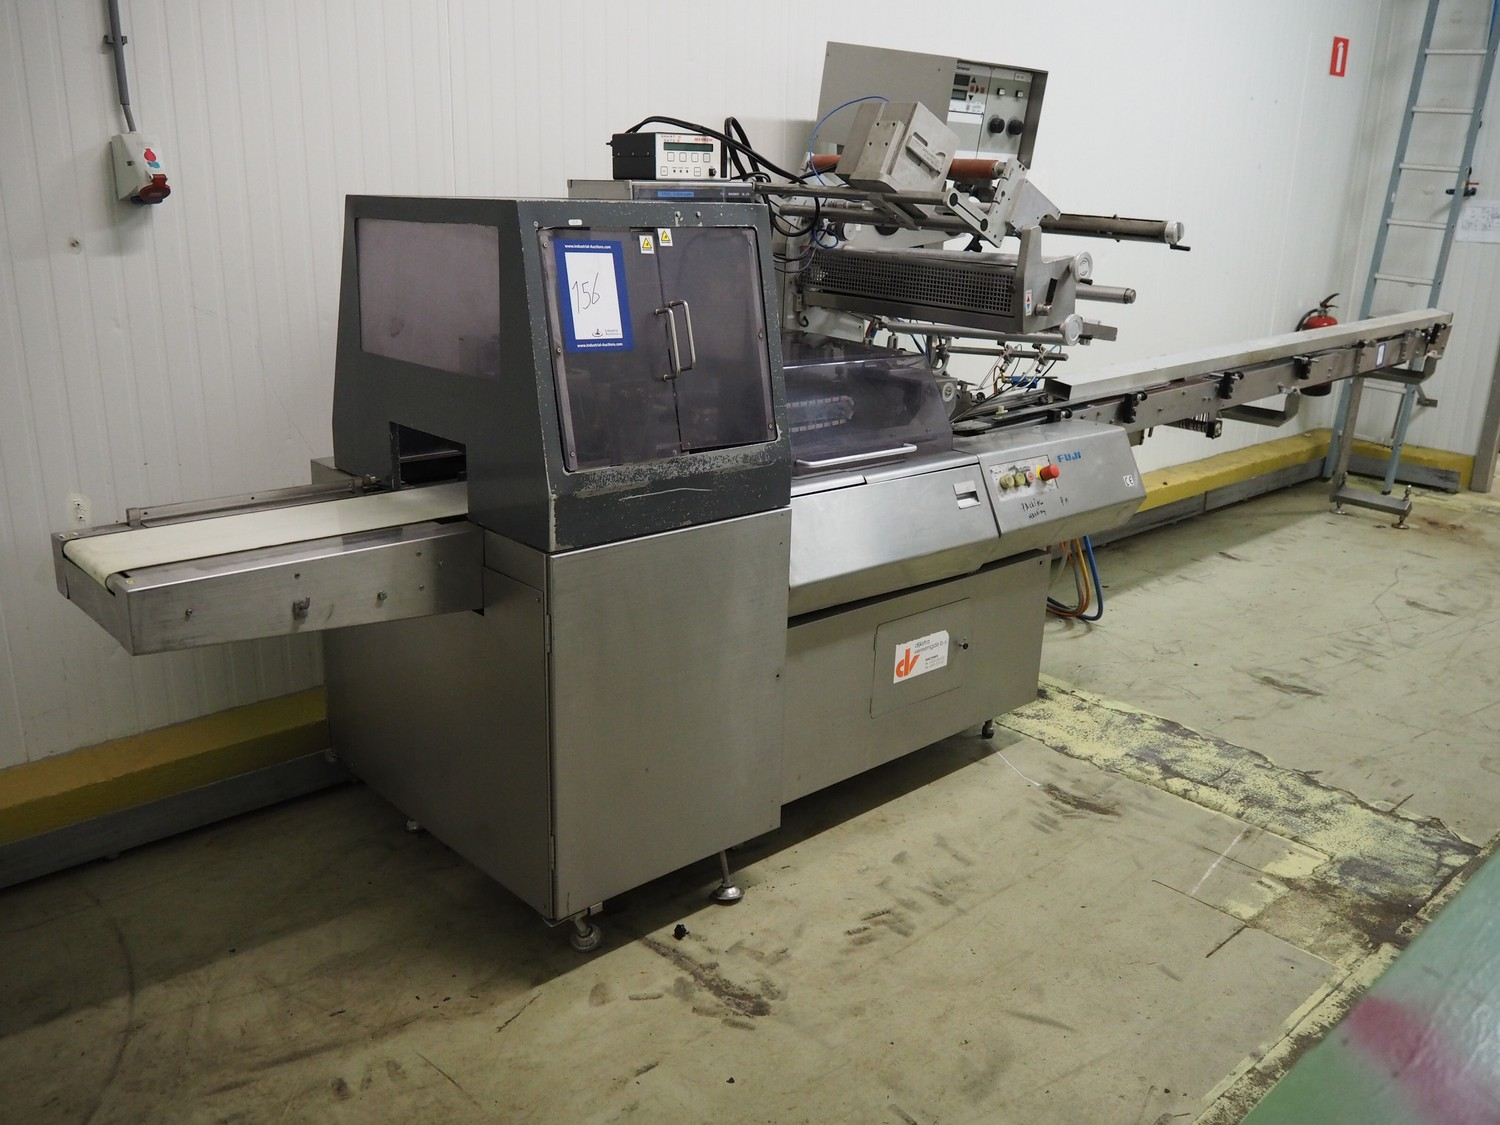 Fuji - Packaging machines - Food processing - Online auction